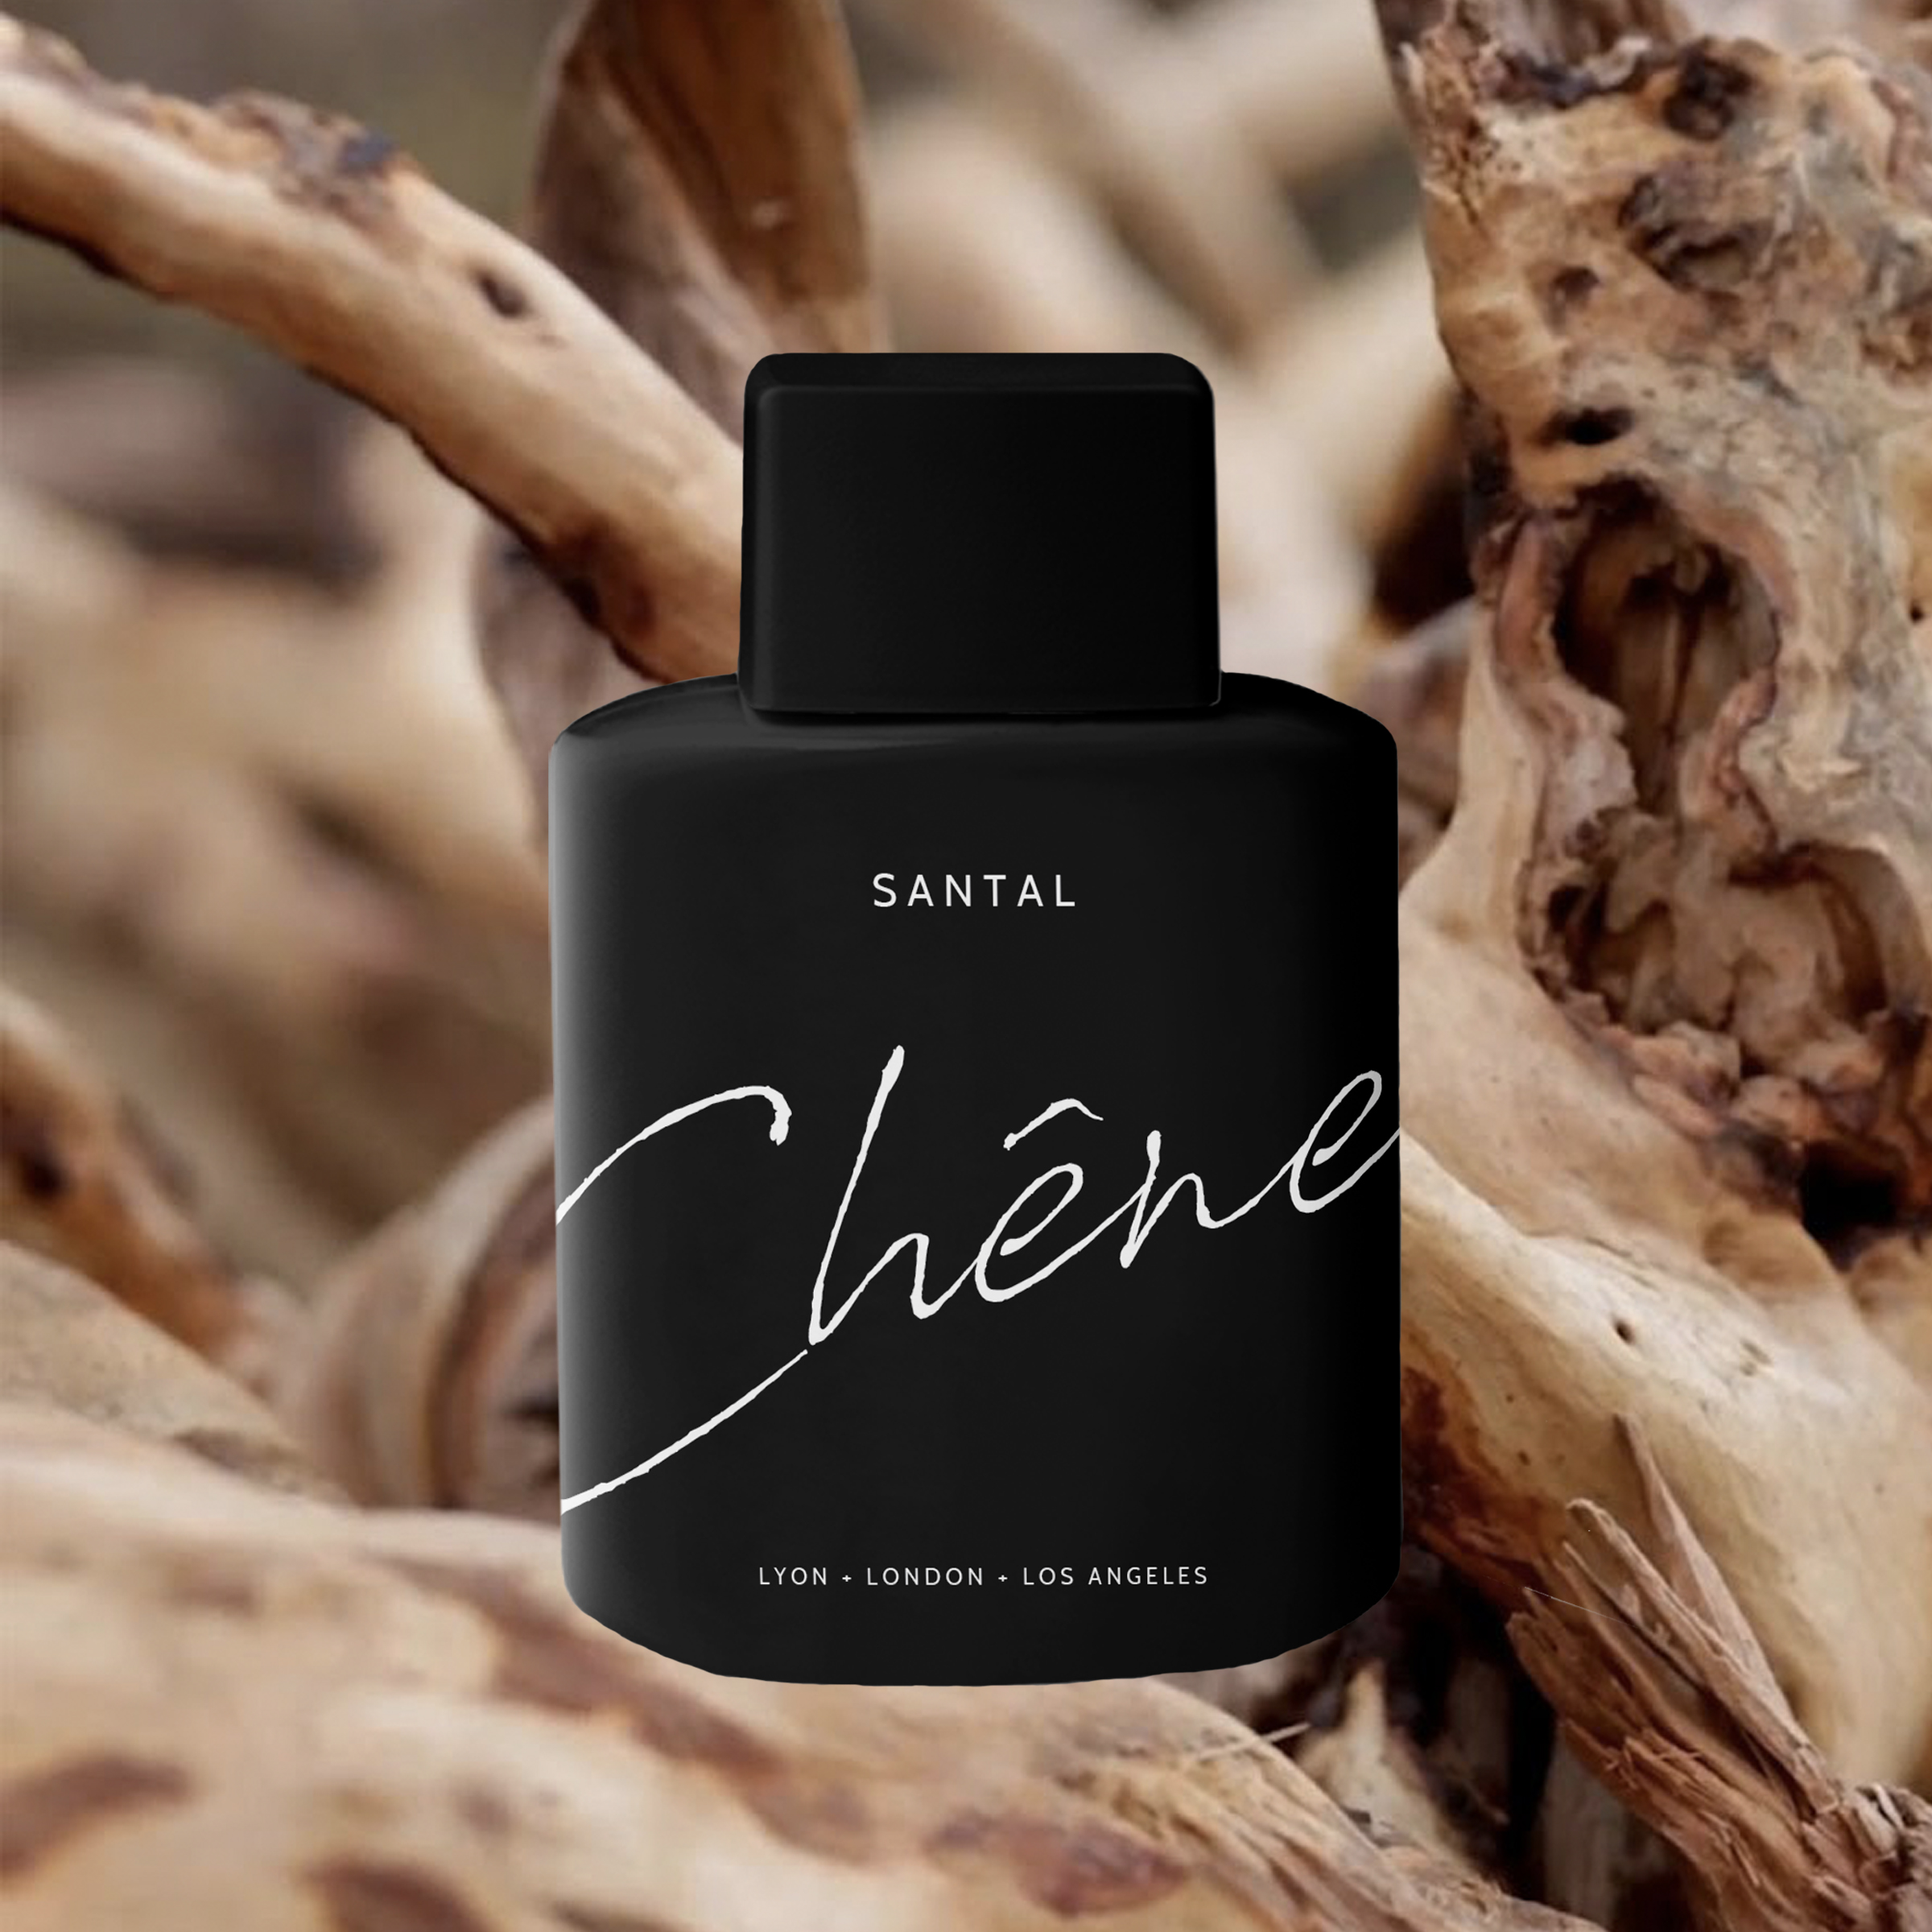 chene sandalwood with image.jpg